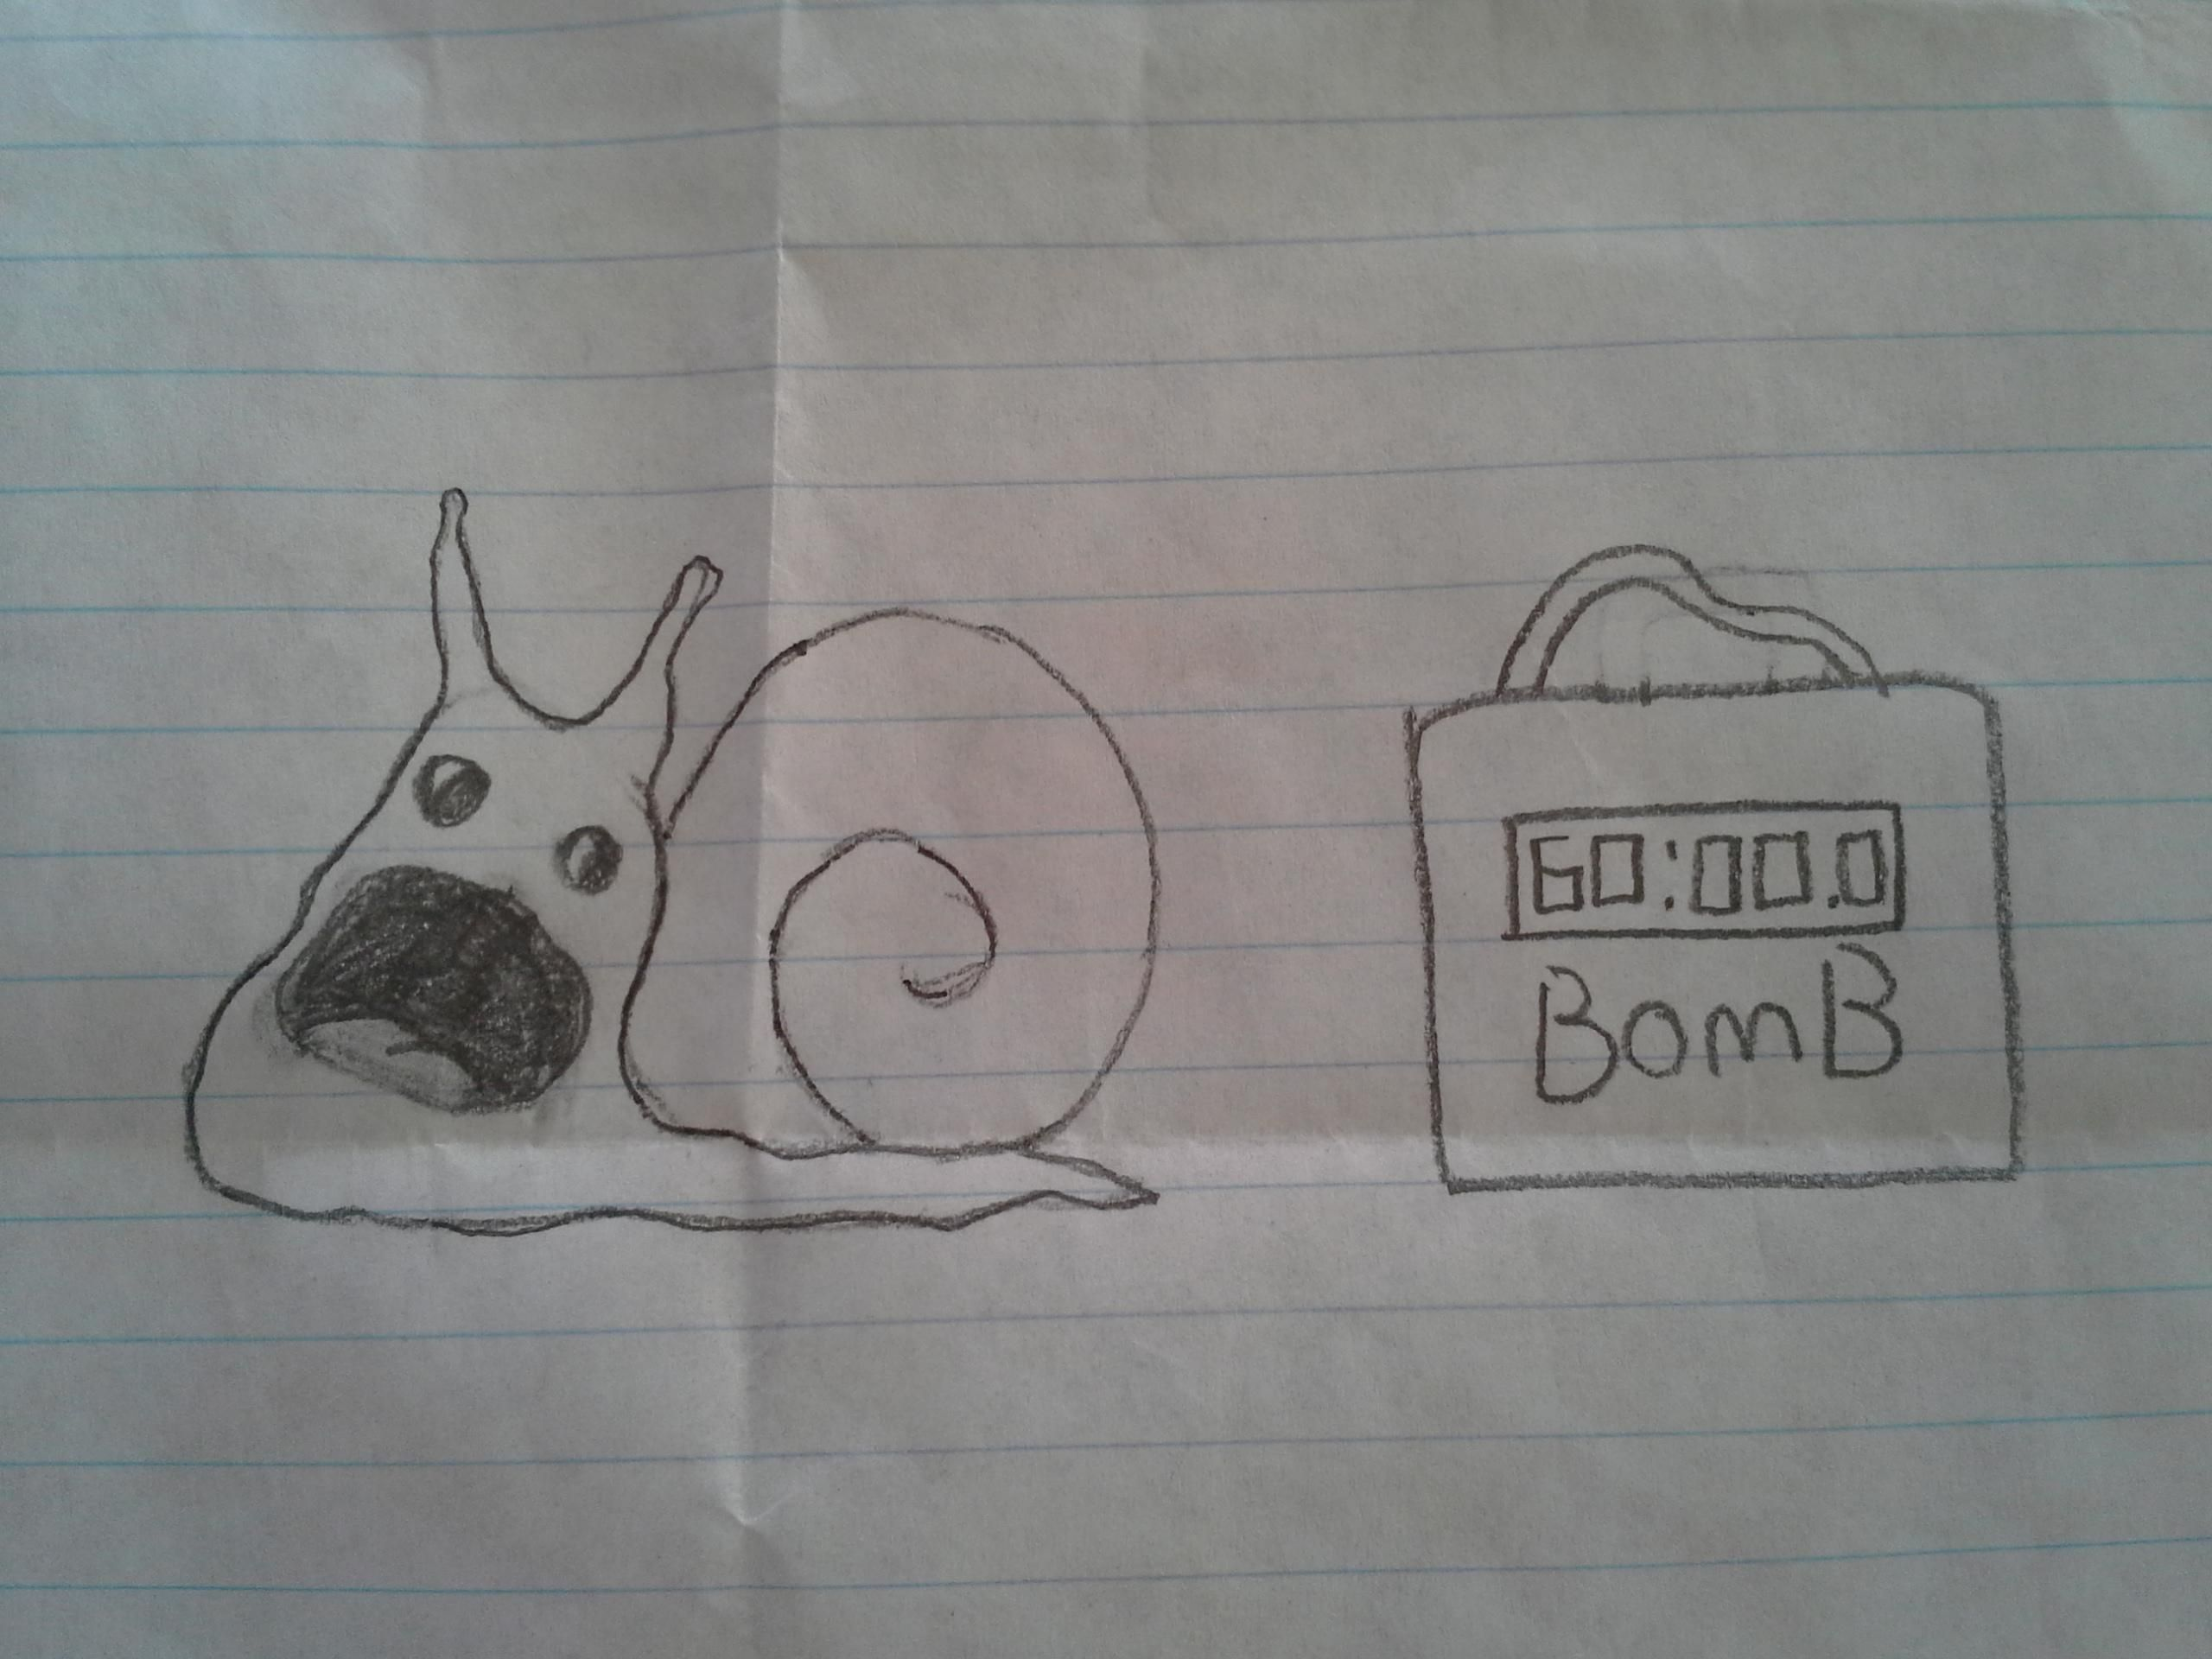 My son drew this in 5th grade. Perhaps I'm biased but I thought it was clever and funny.